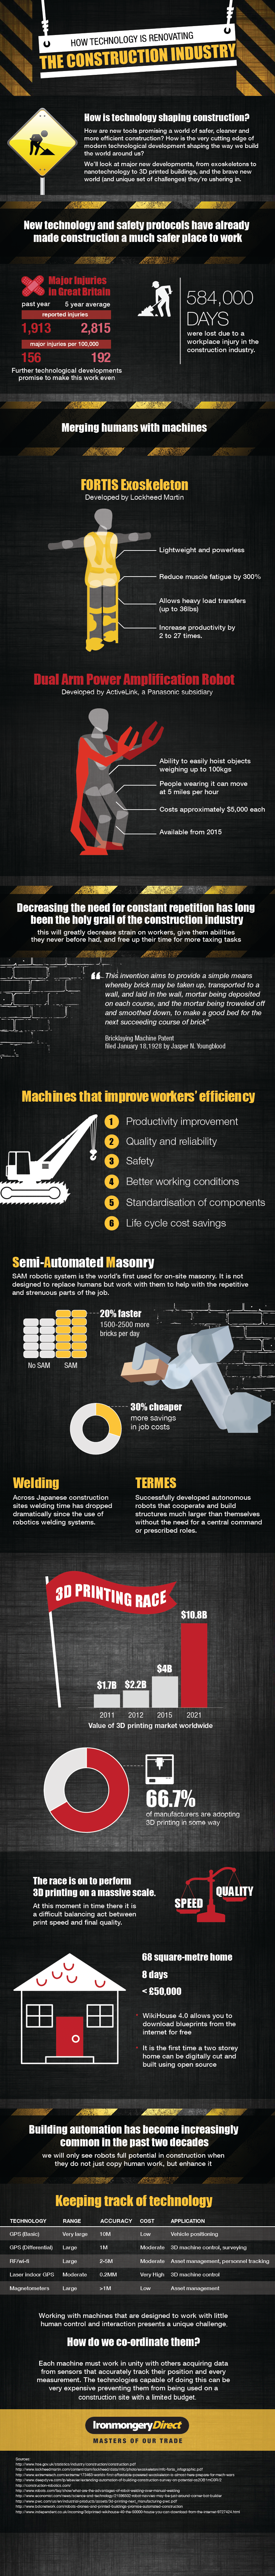 How Technology is Renovating the Construction Industry